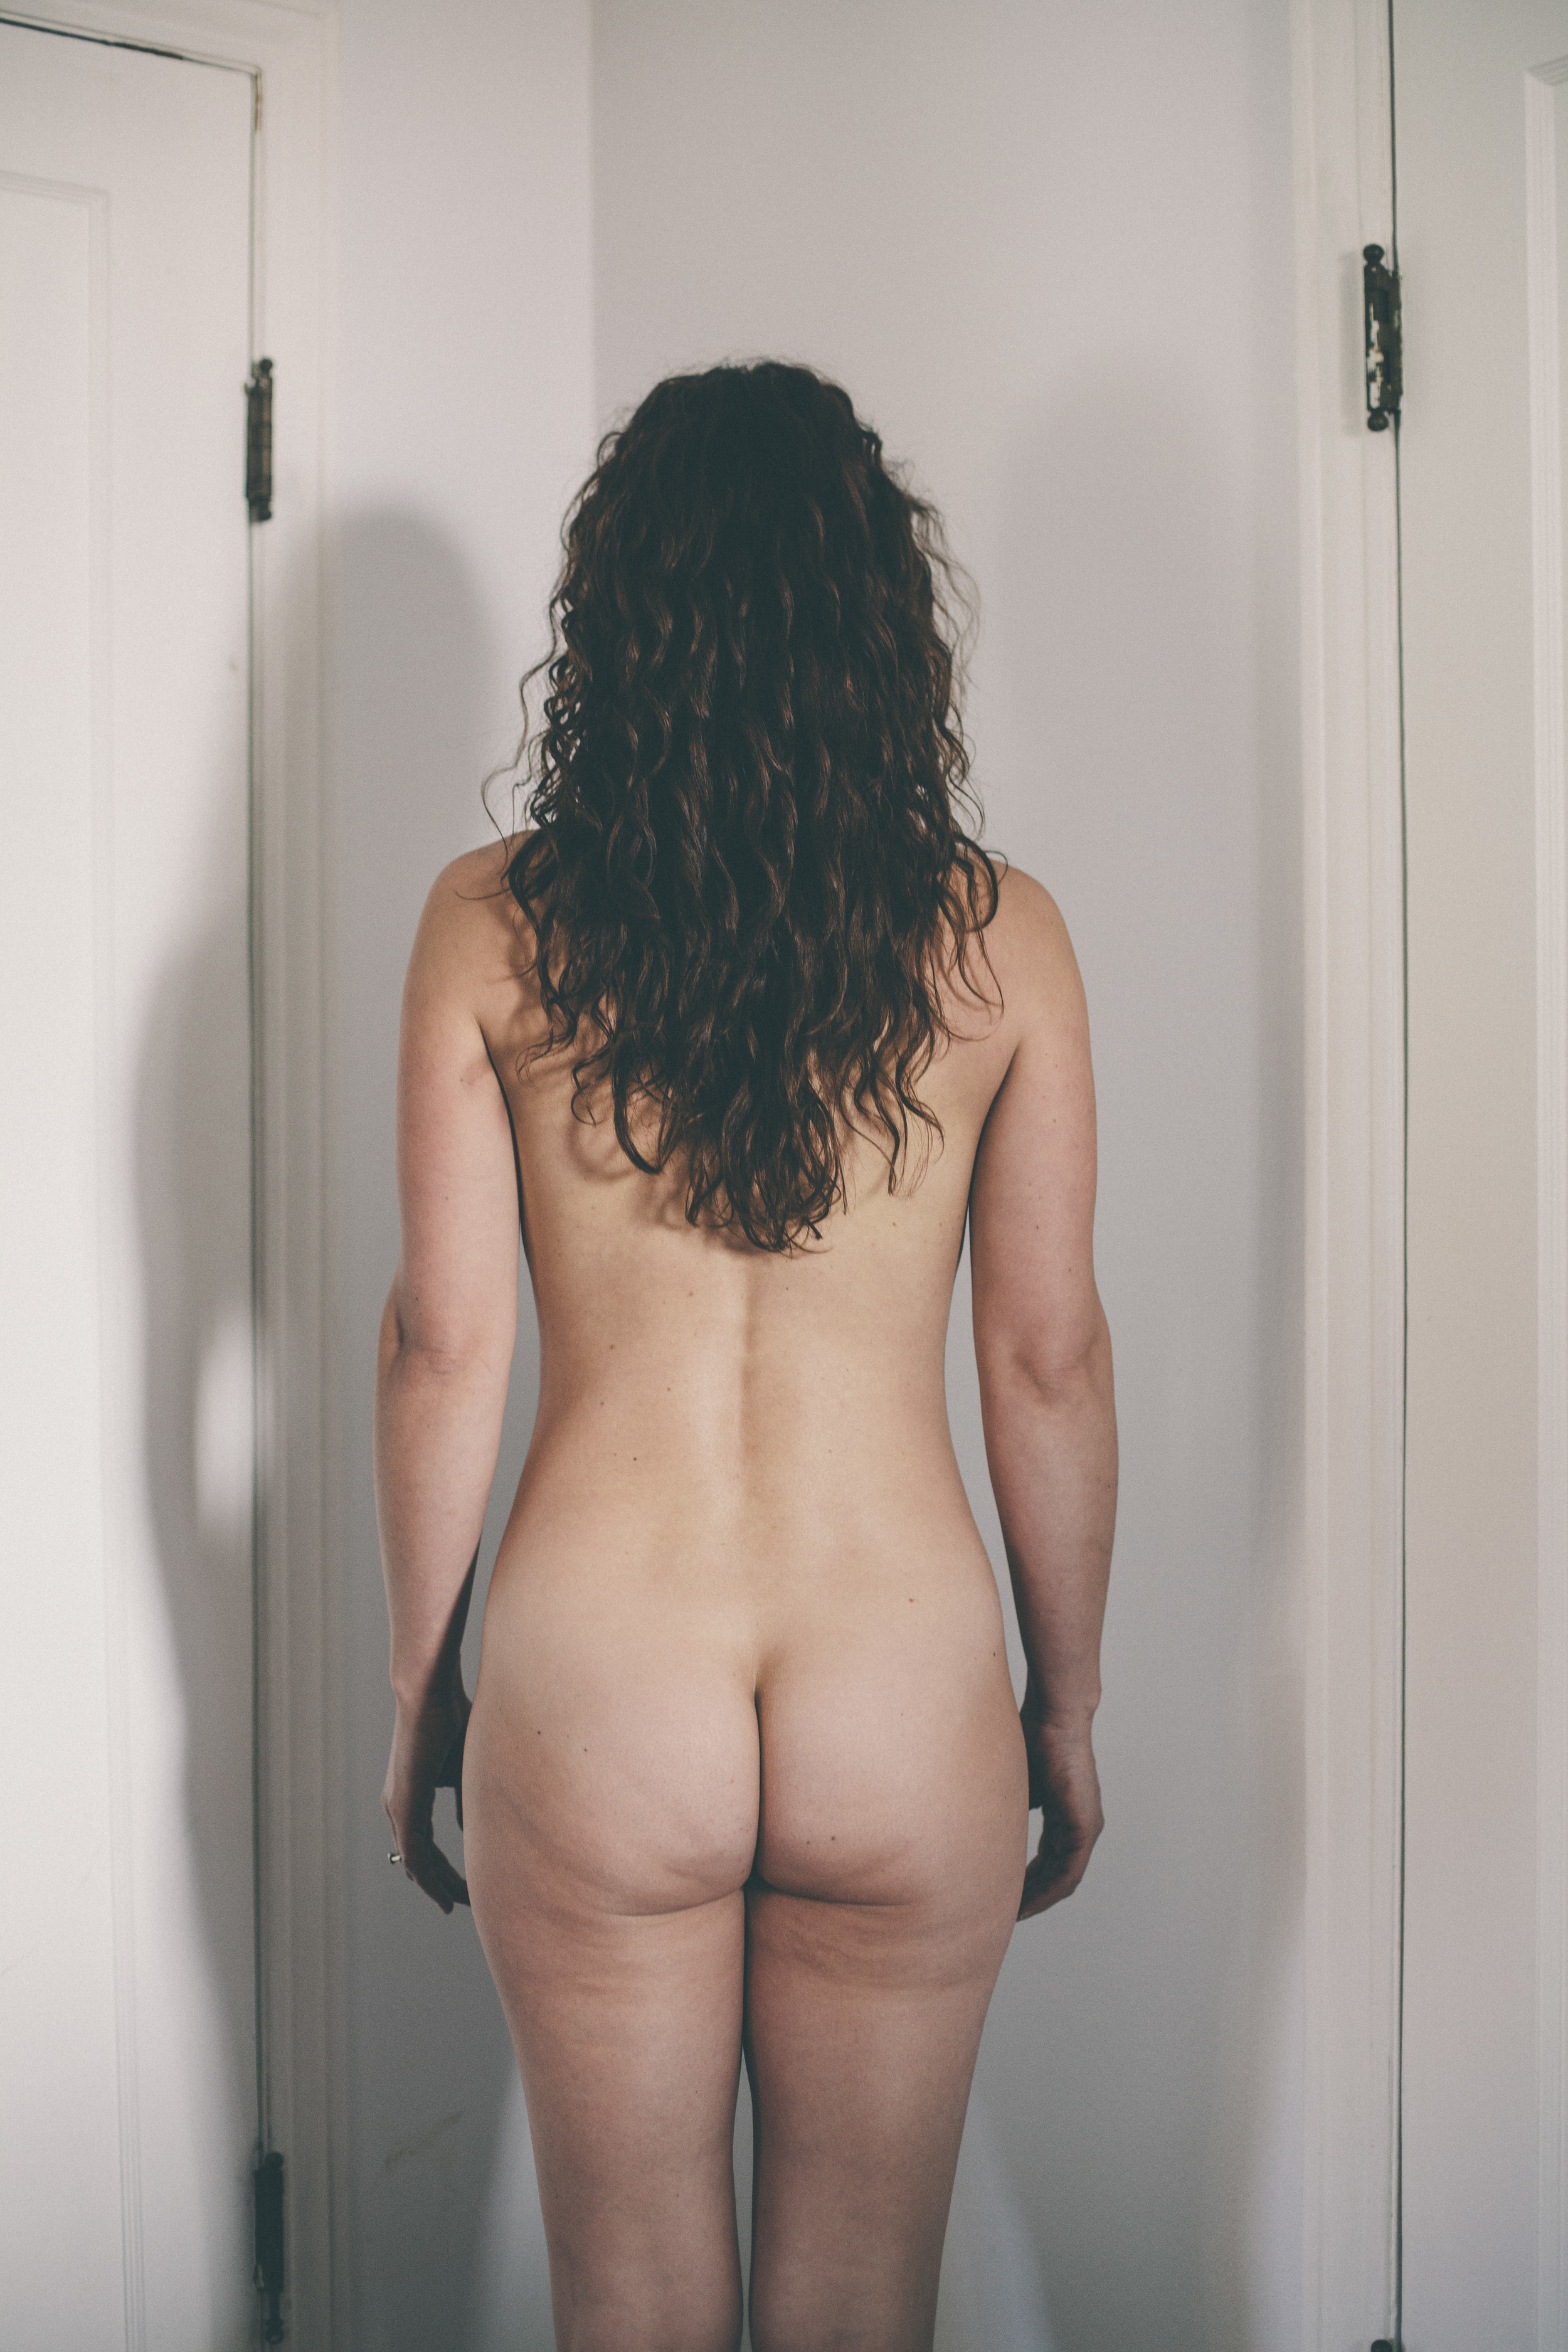 I woke up like this #022 fine art photography nudity body positivity 6